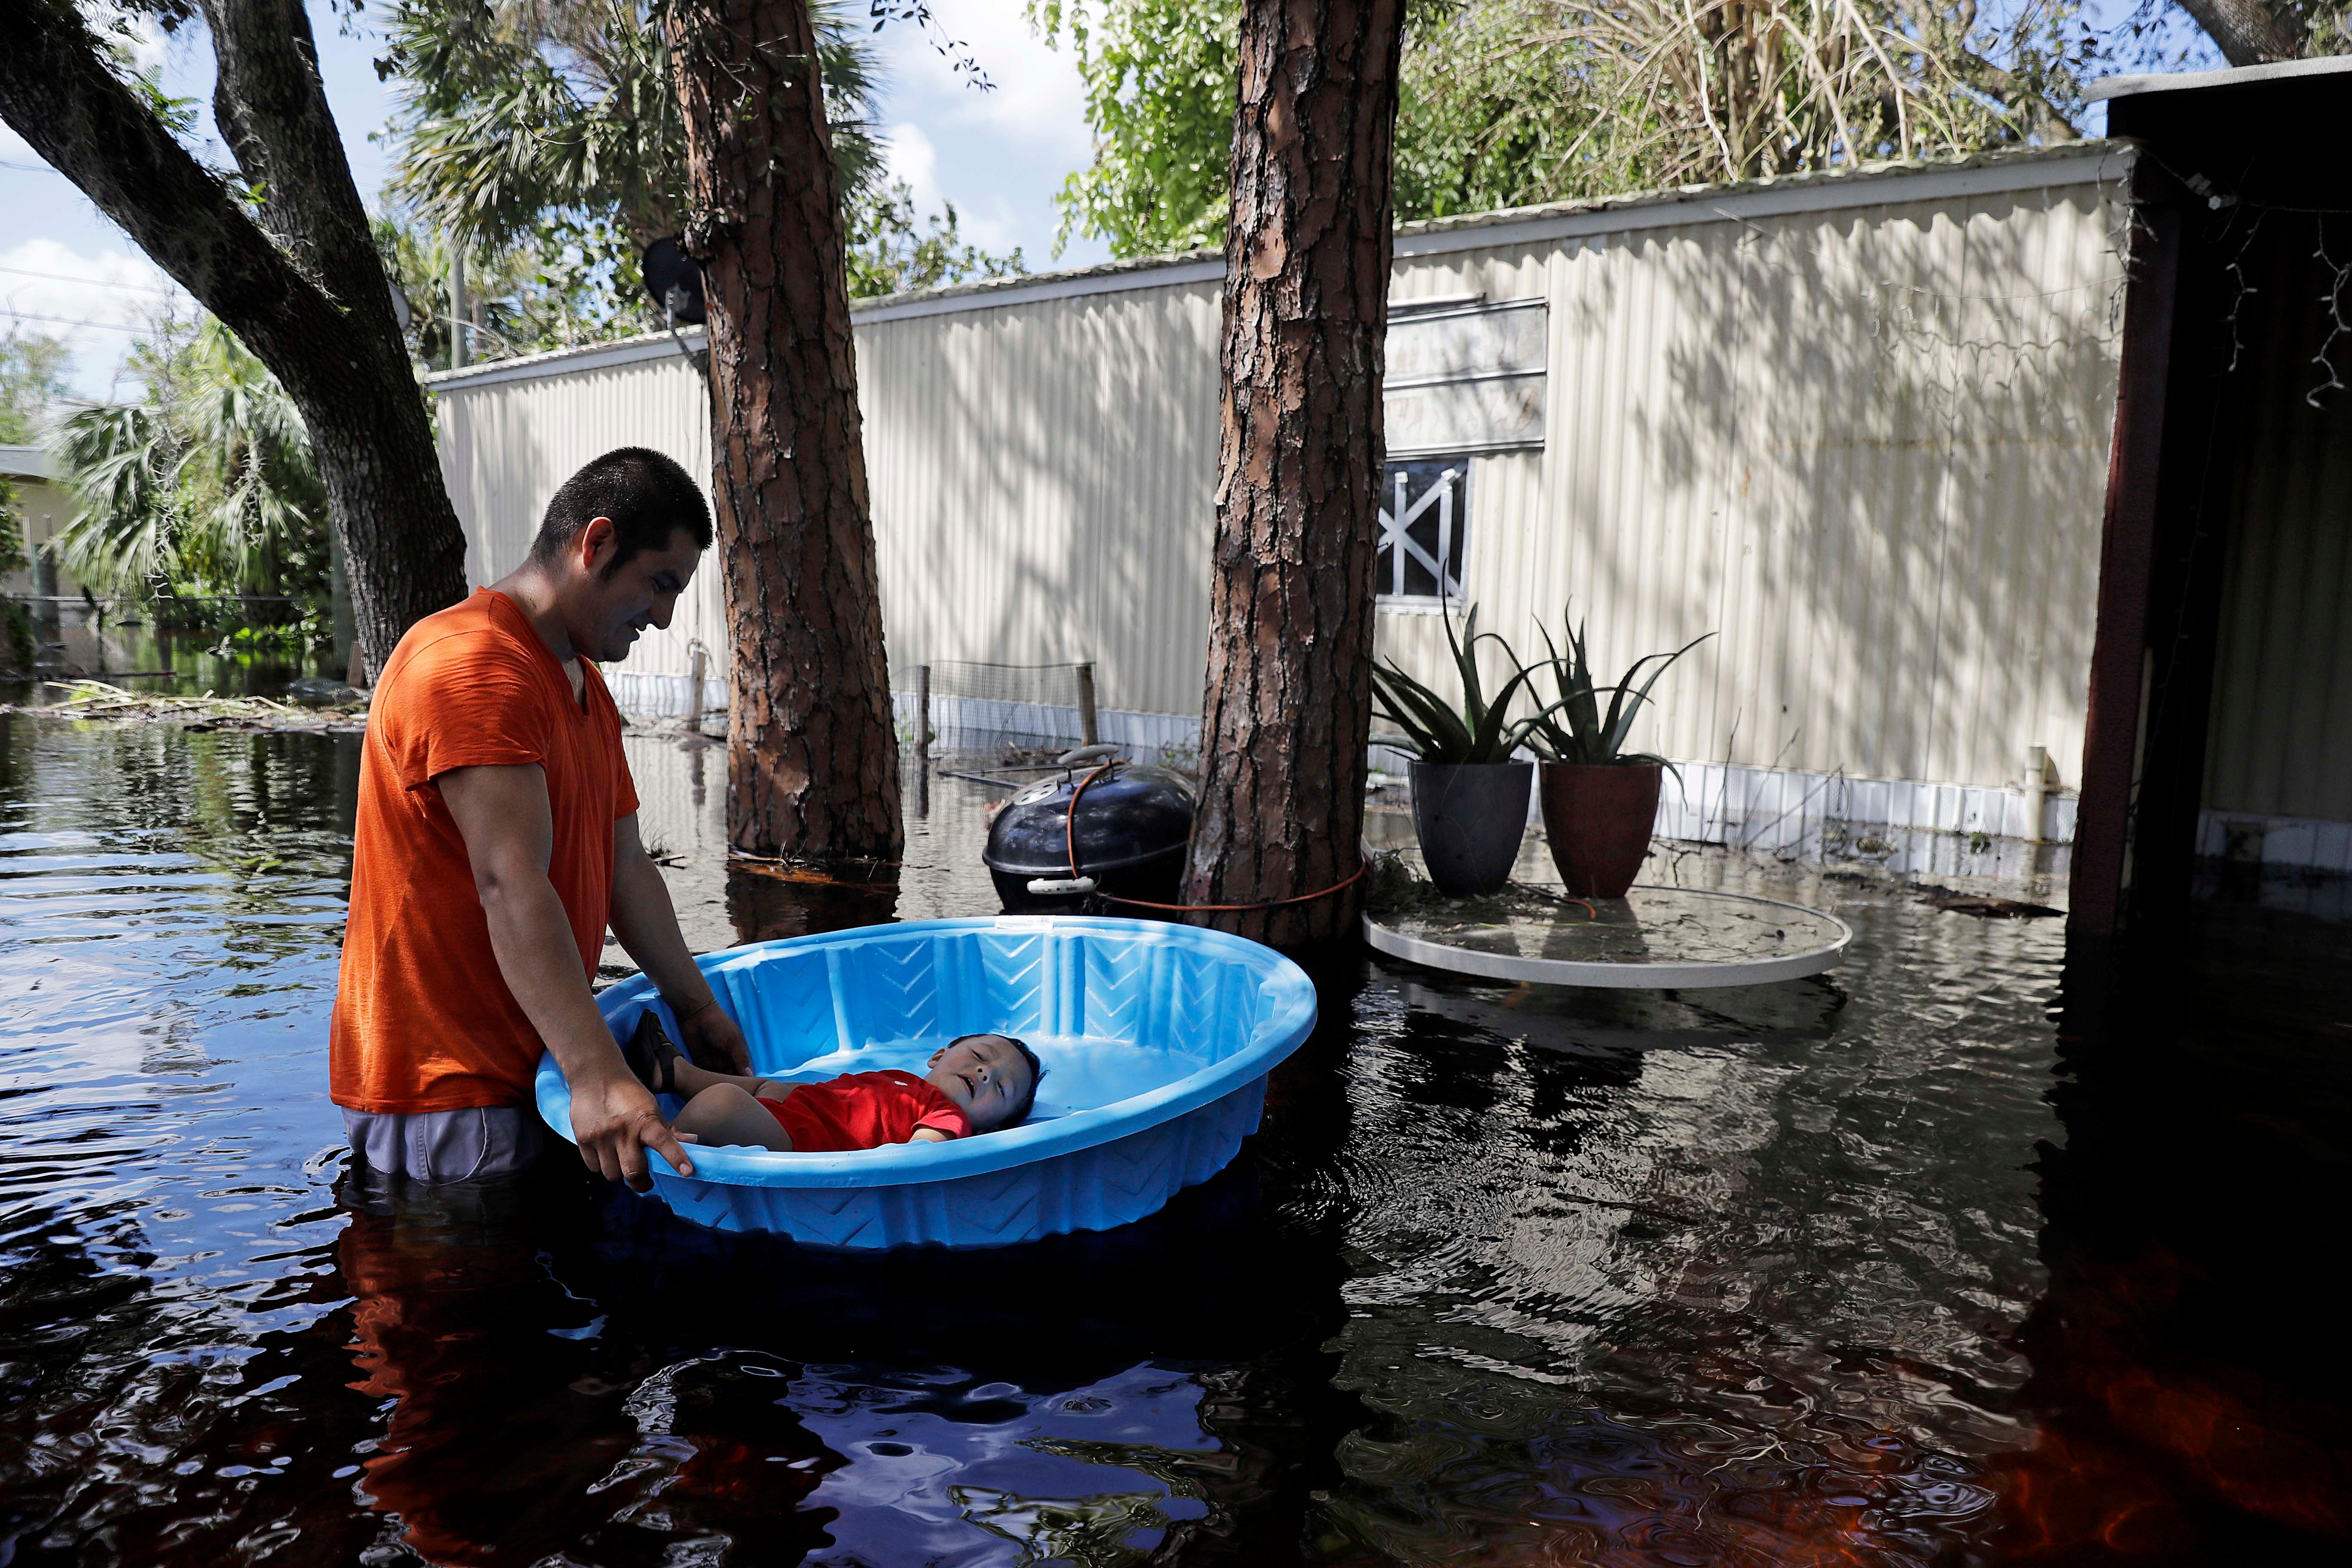 Jose Lopez floats his son Jose Jr, 1, in a splash pool as they retrieve belongings from their flooded home following Hurricane Irma in Bonita Springs, Fla., Tuesday, Sept. 12, 2017. (AP Photo/David Goldman)